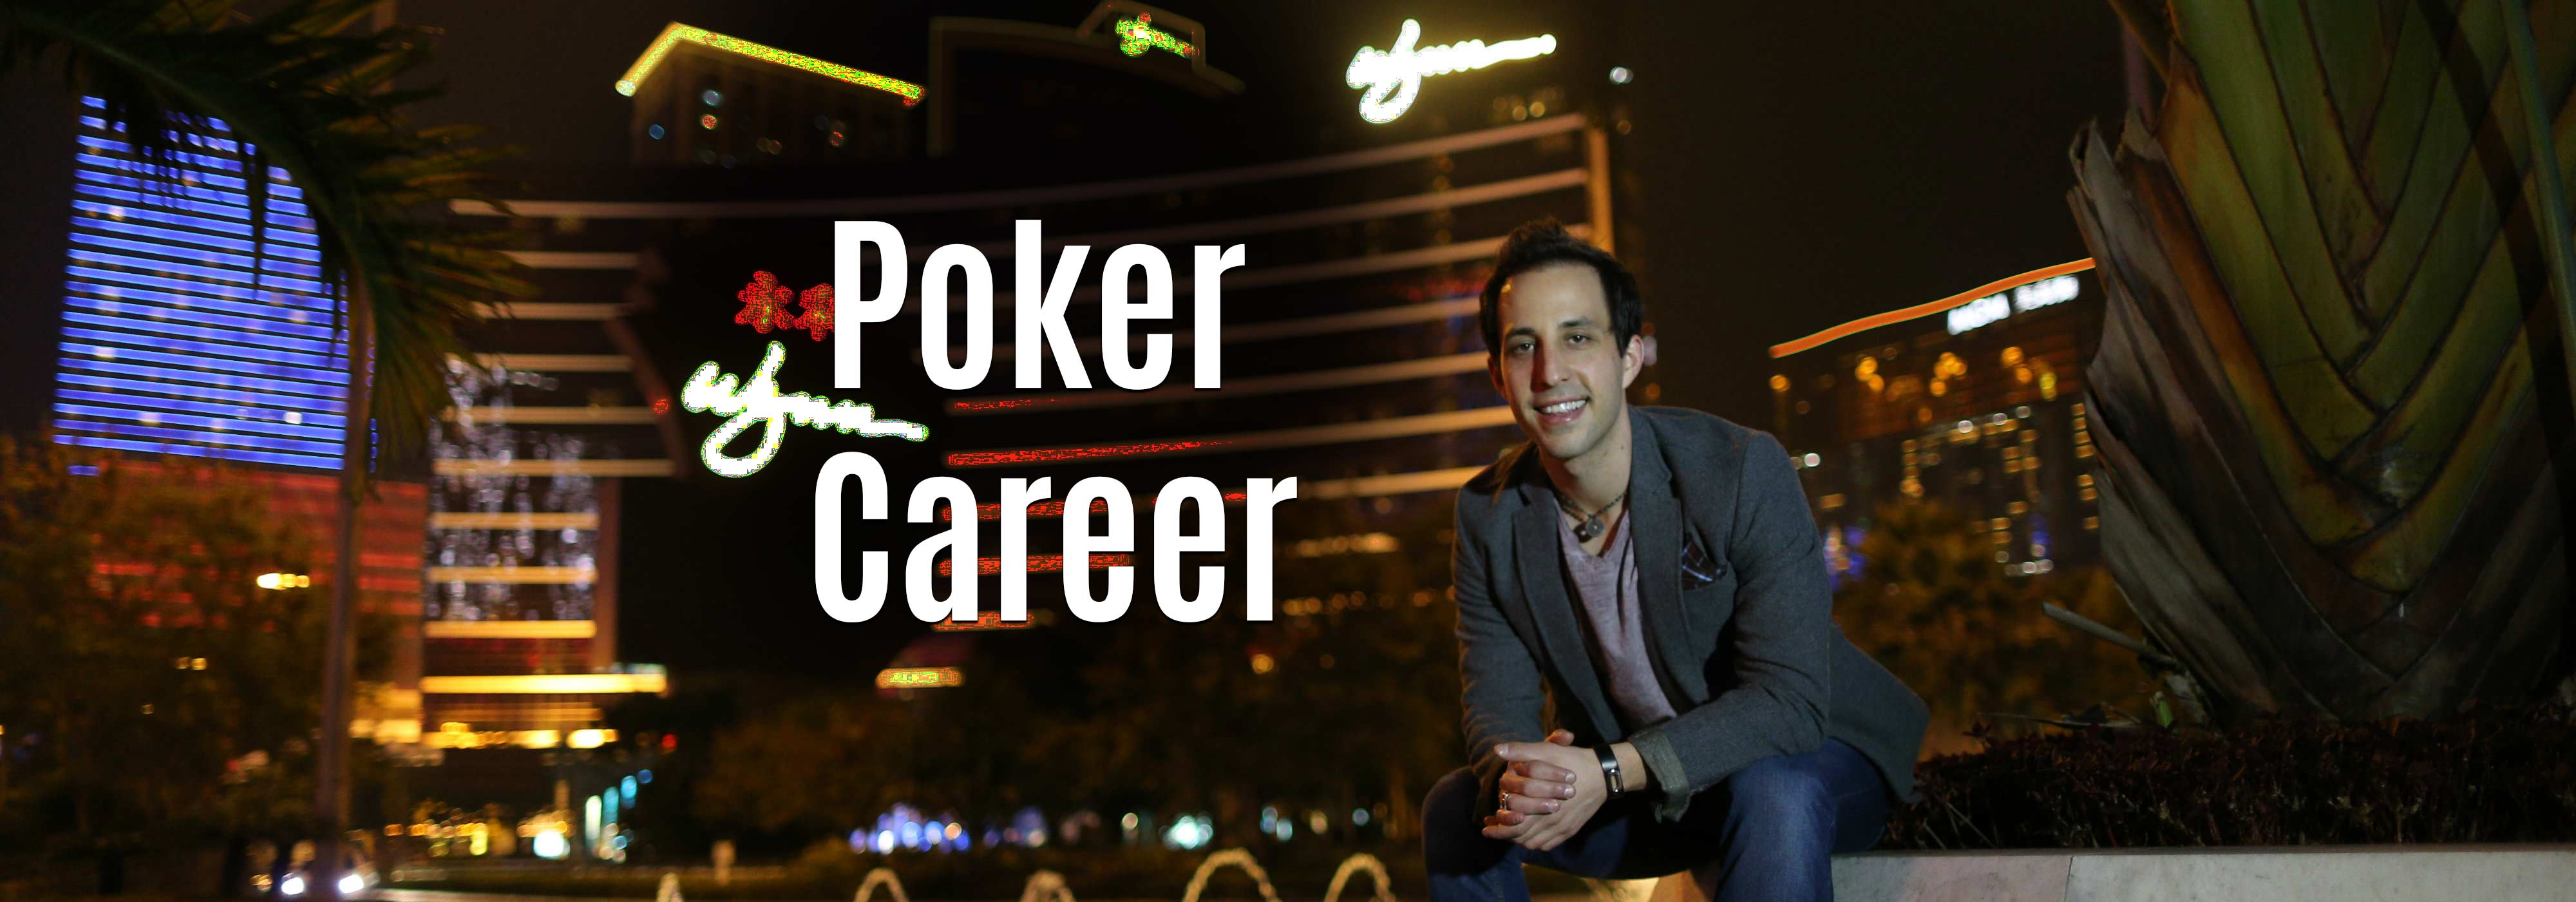 torelli-poker-career